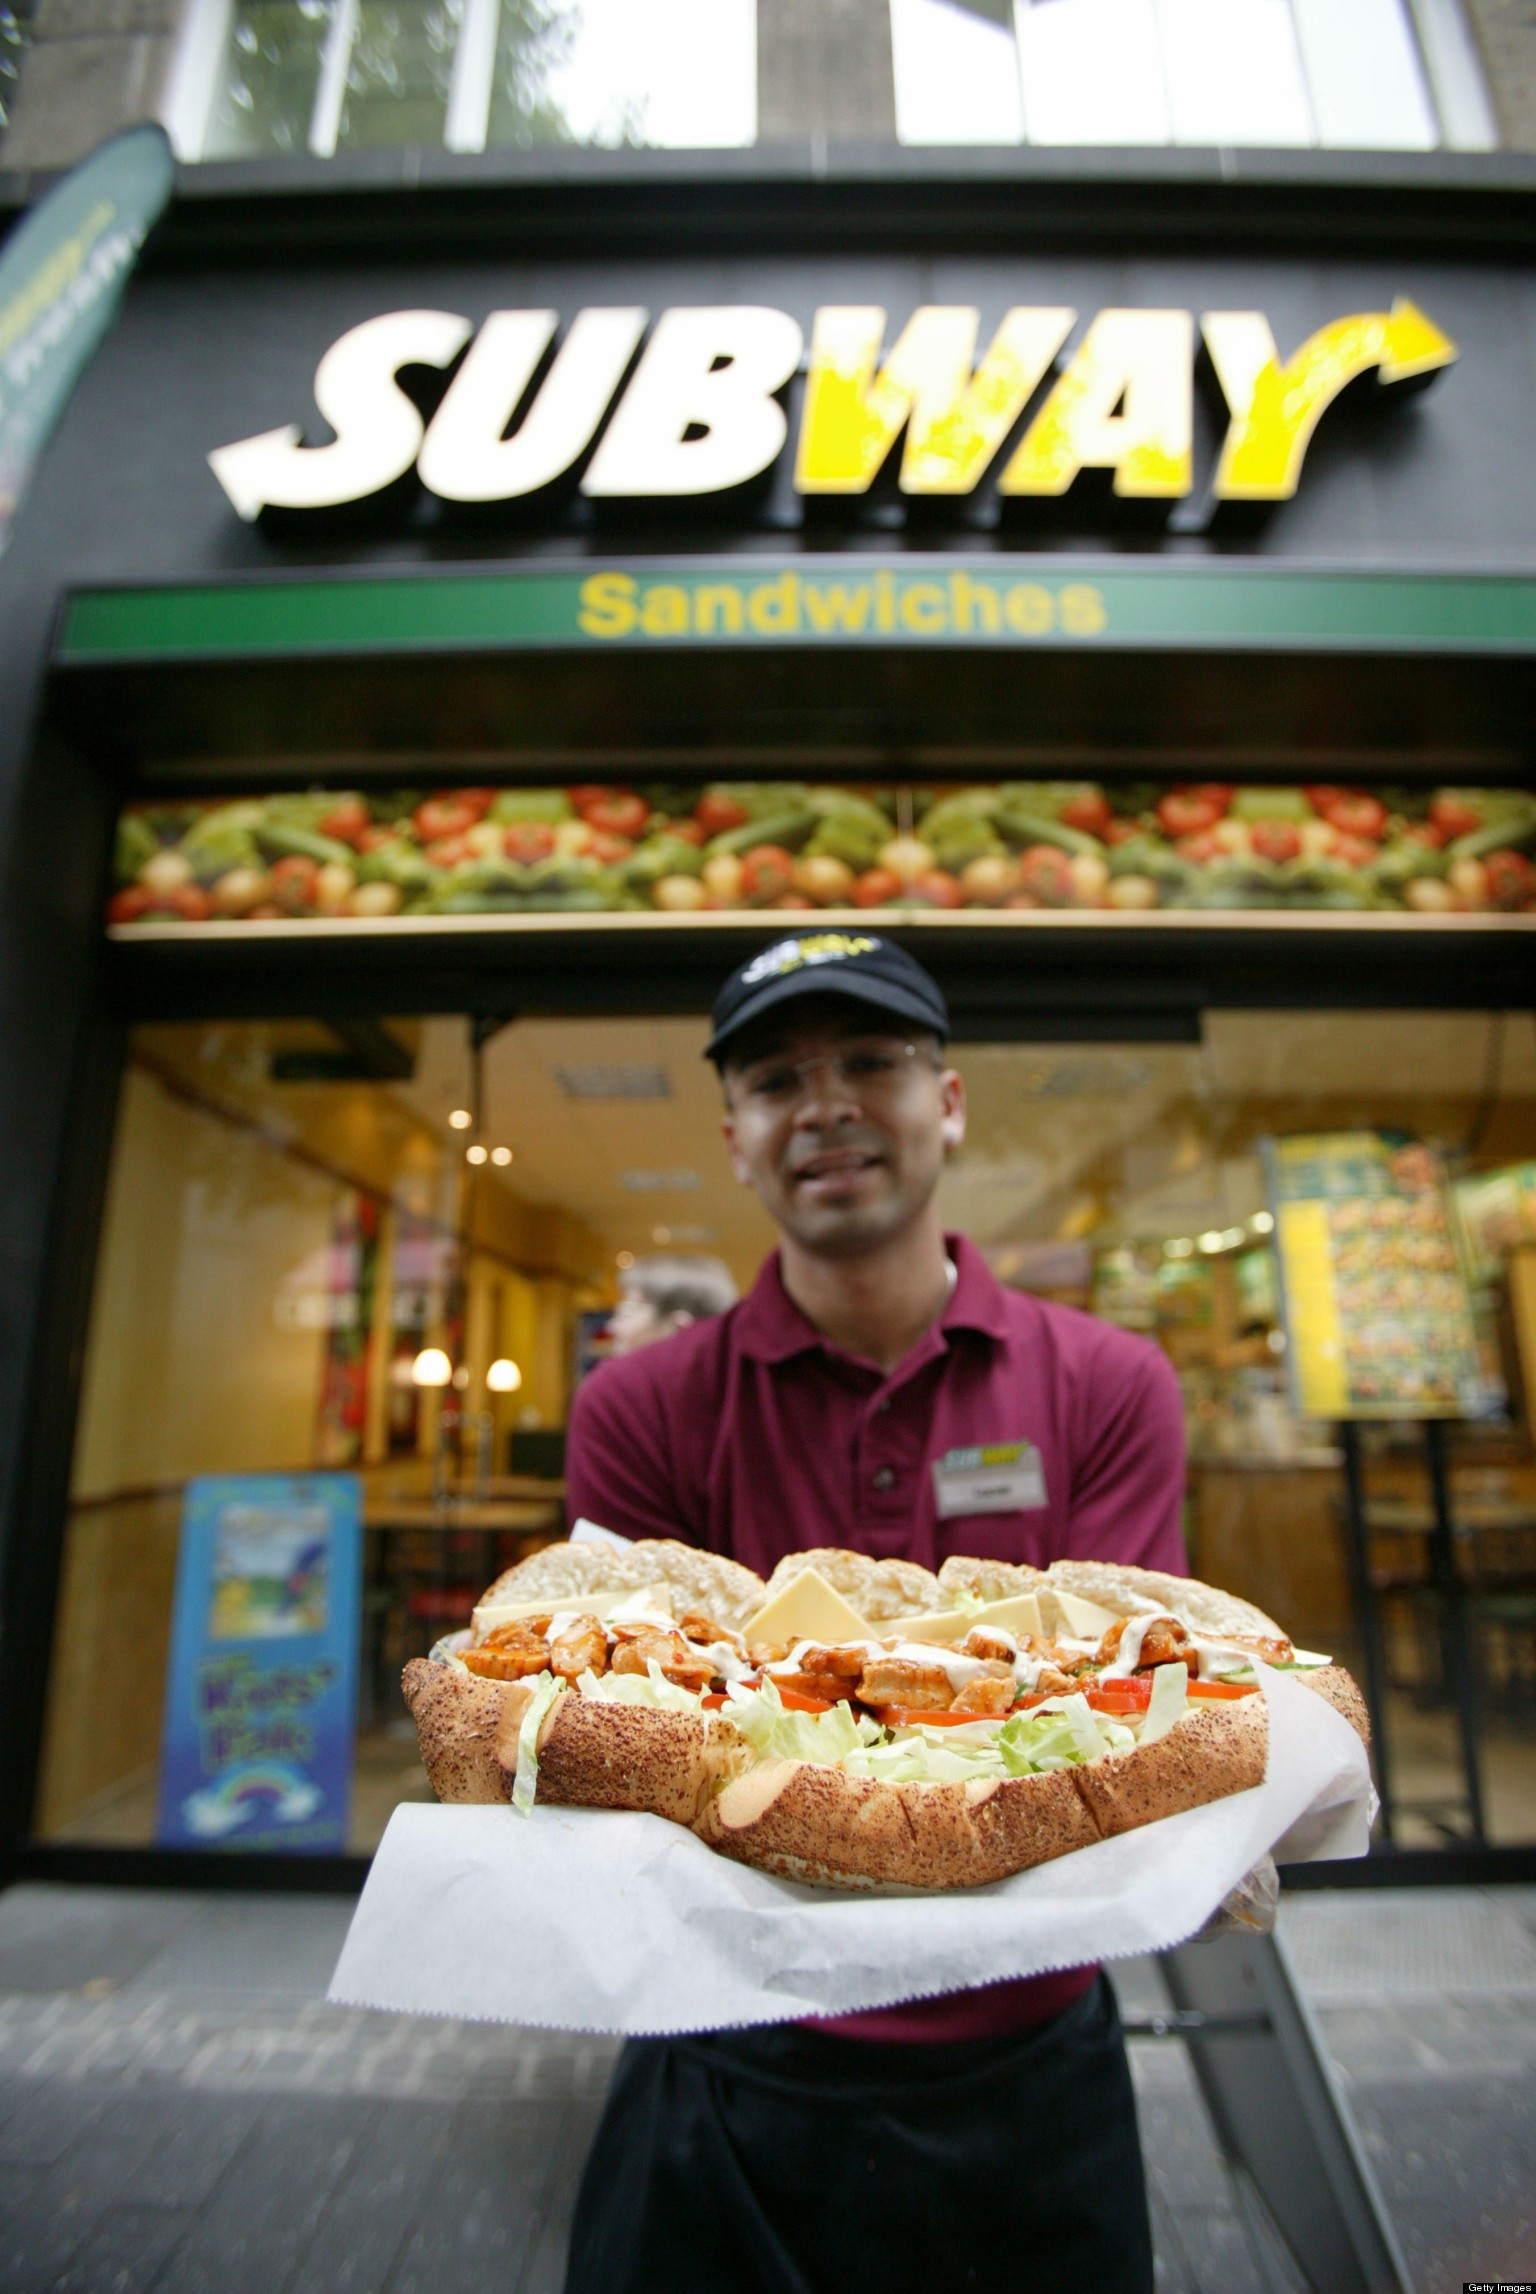 How Can I Get Free Food From Subway